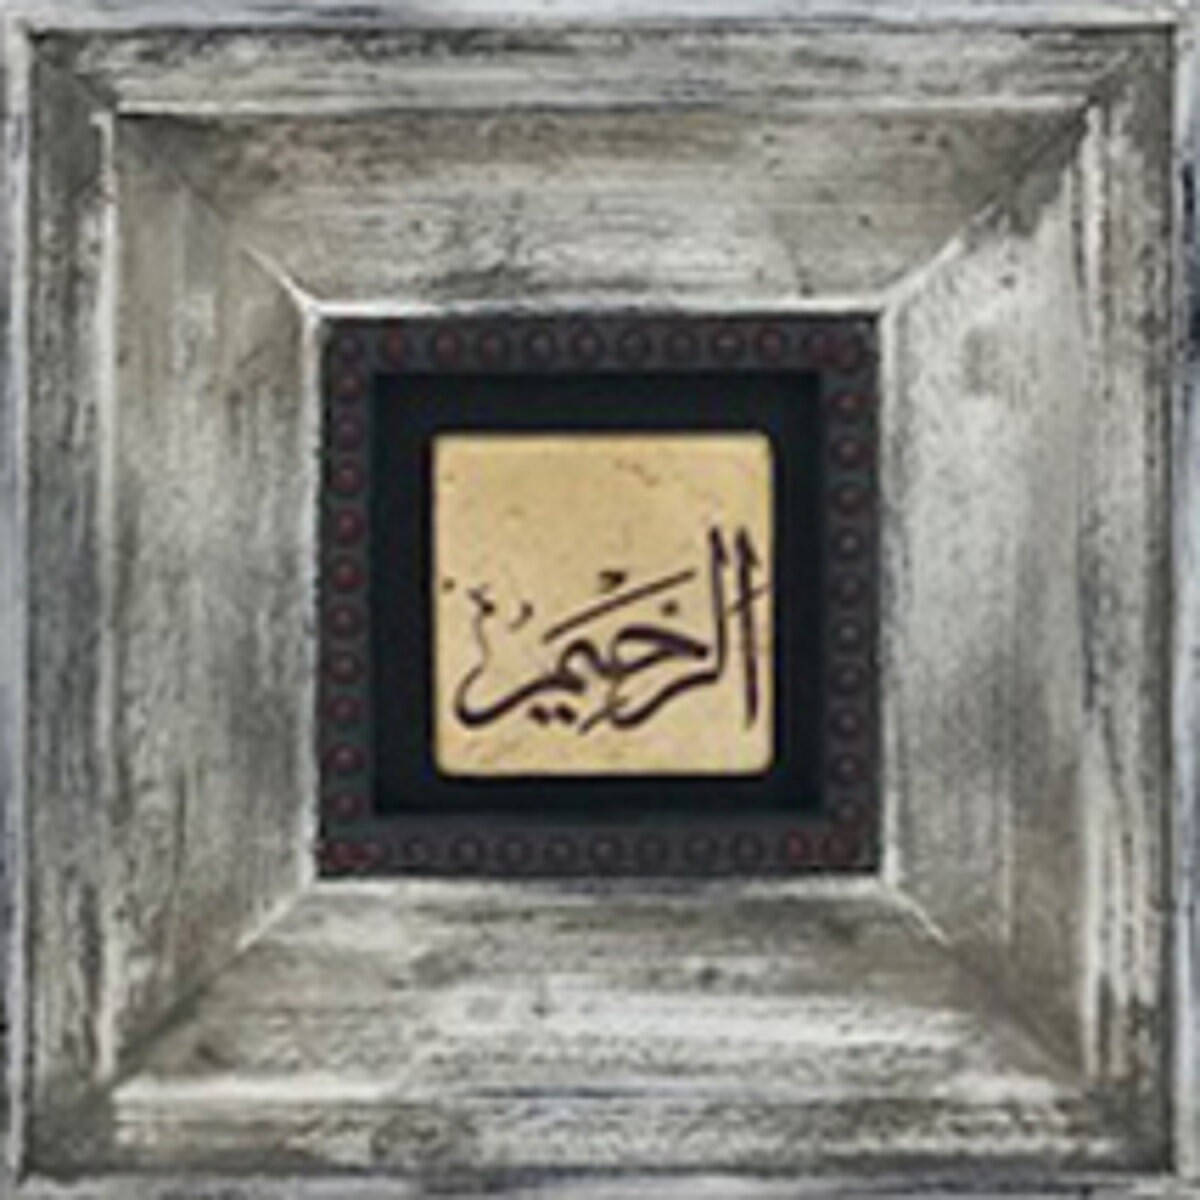 Ar Rahim - The Most Merciful Thuluth Design Stone Washed Grey Square Stand Alone frame